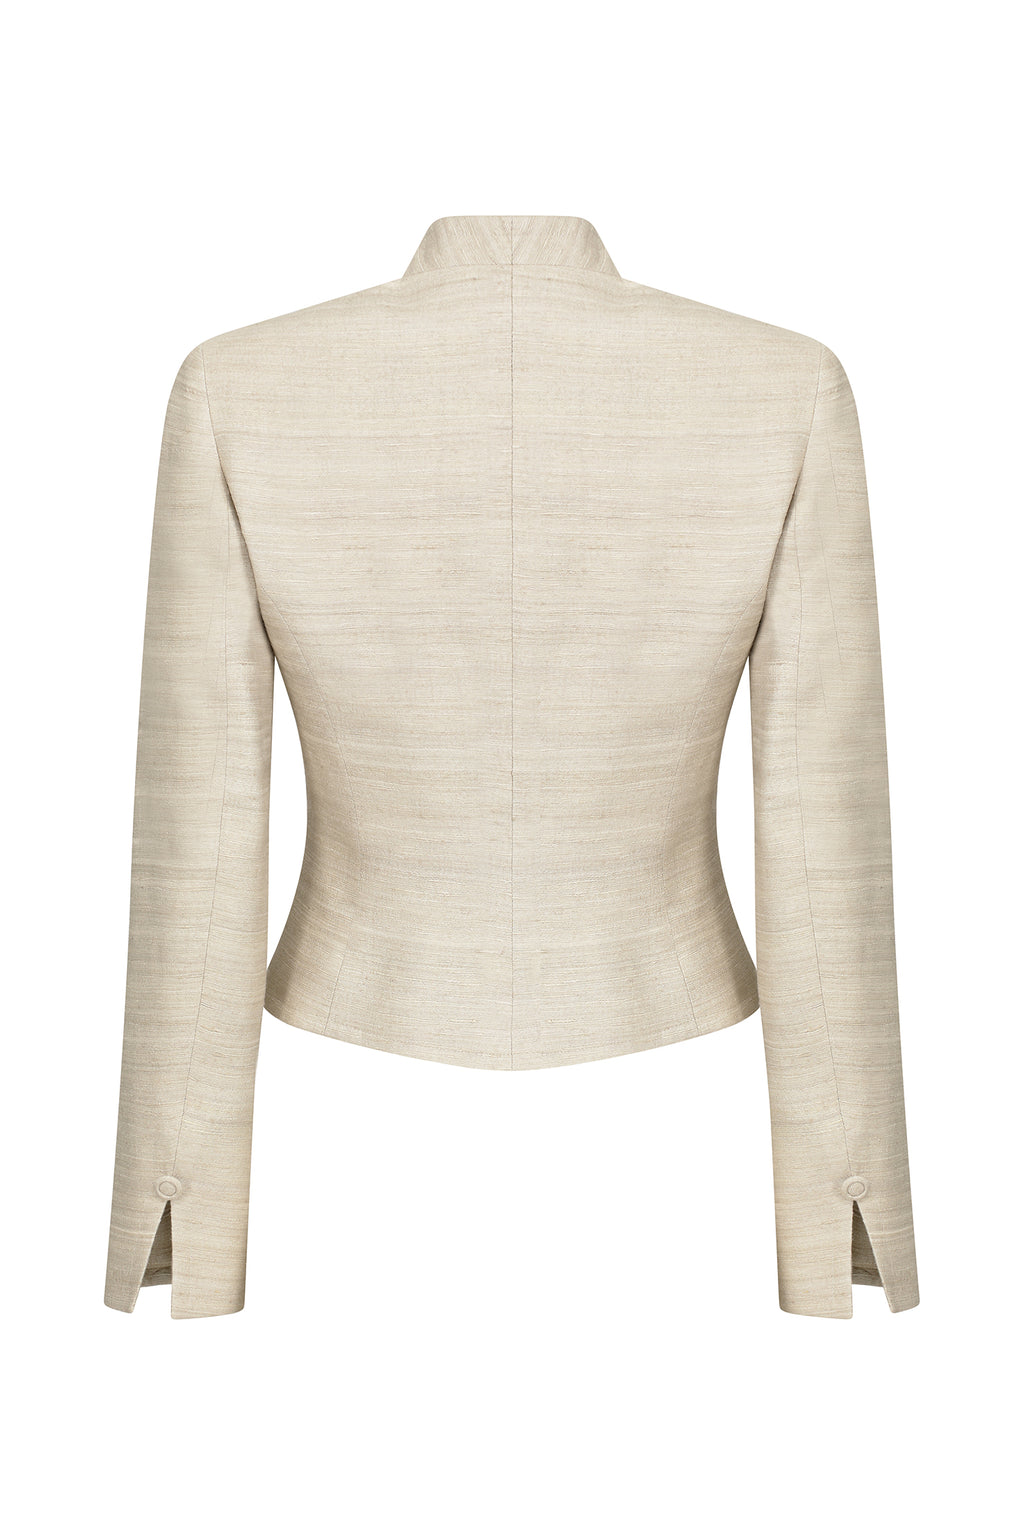 Shaped Jacket in Plain Raw Silk with Waist Fastening - Marina